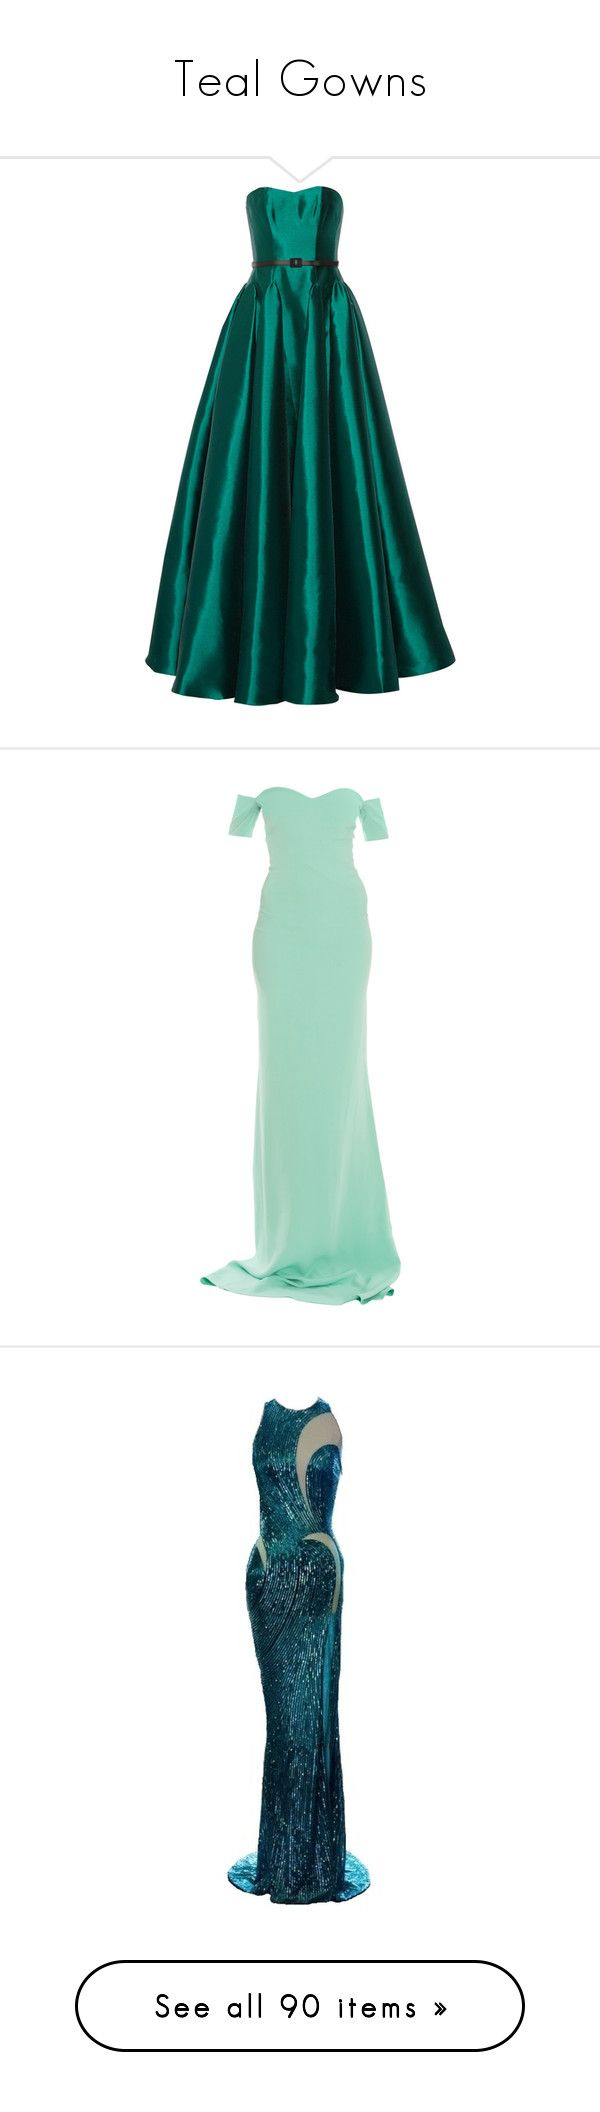 Teal gowns